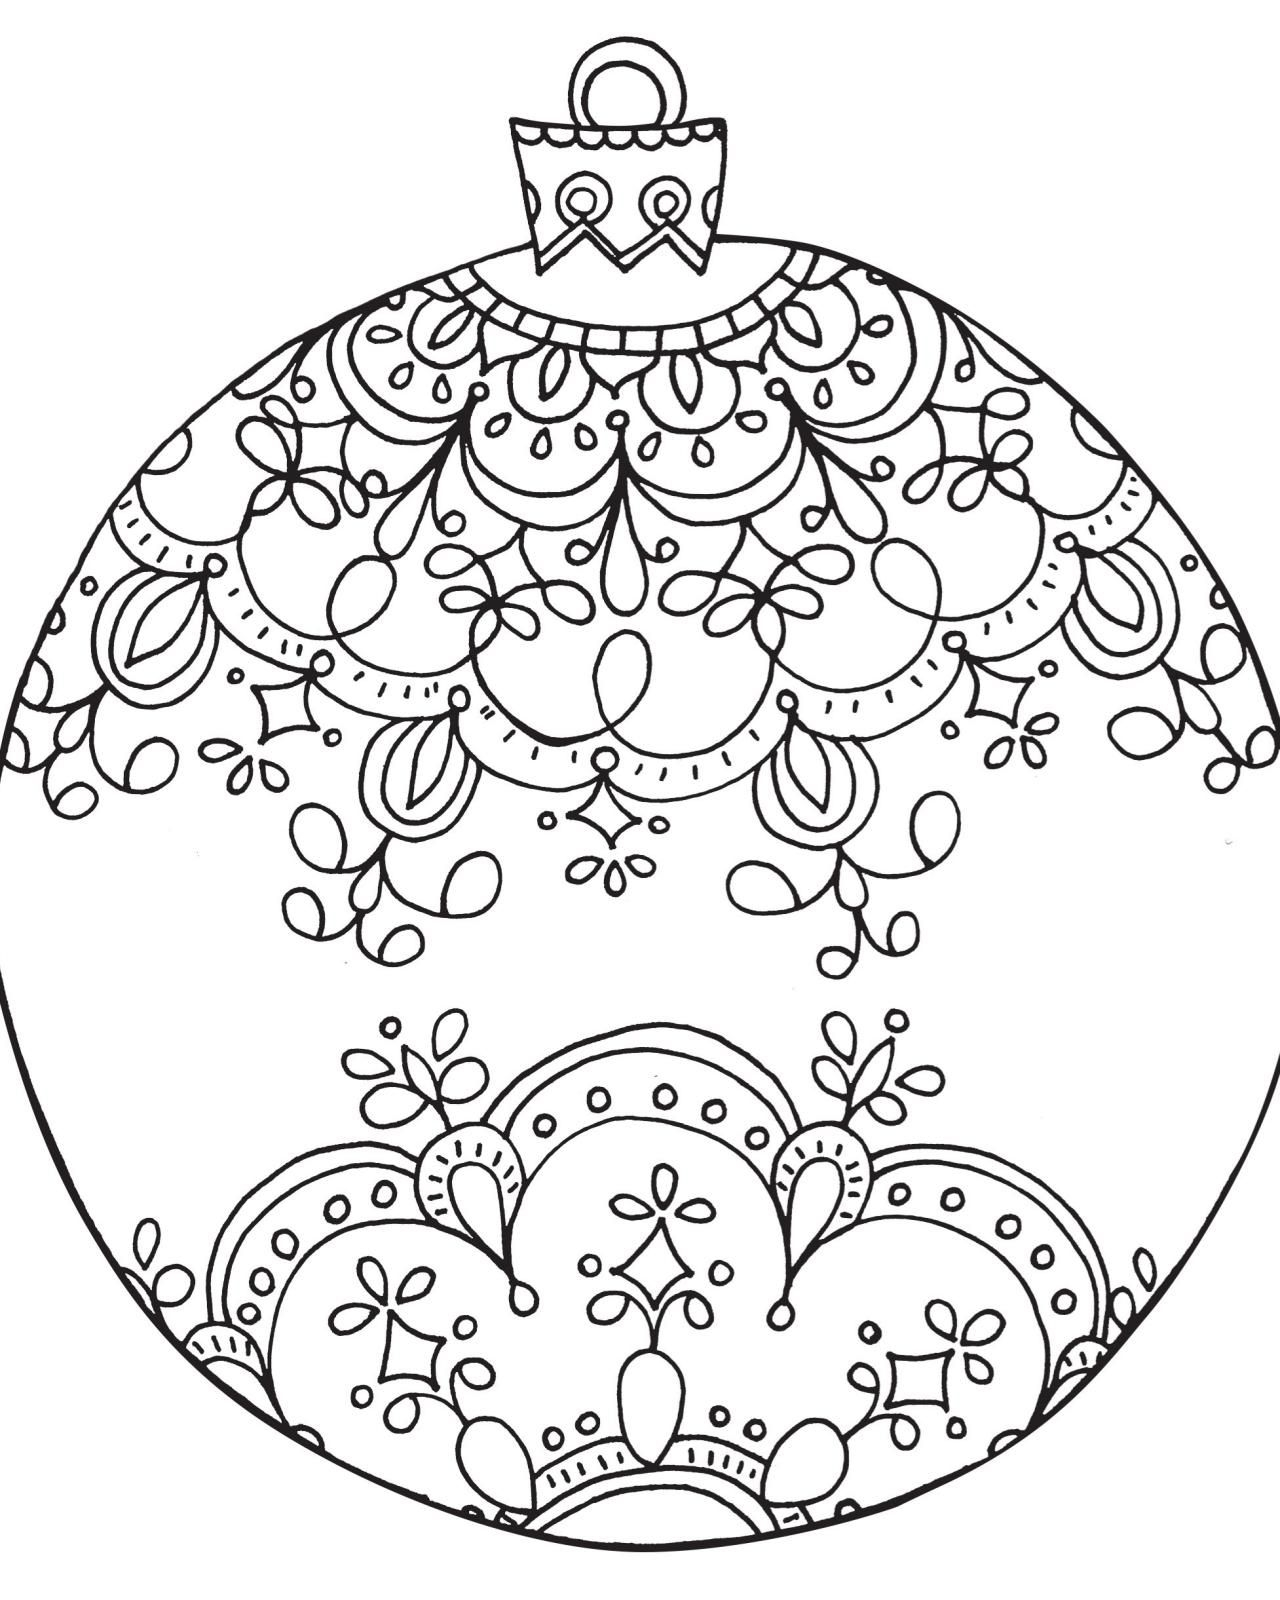 Free Holiday Coloring Pages For Adults At Getdrawings